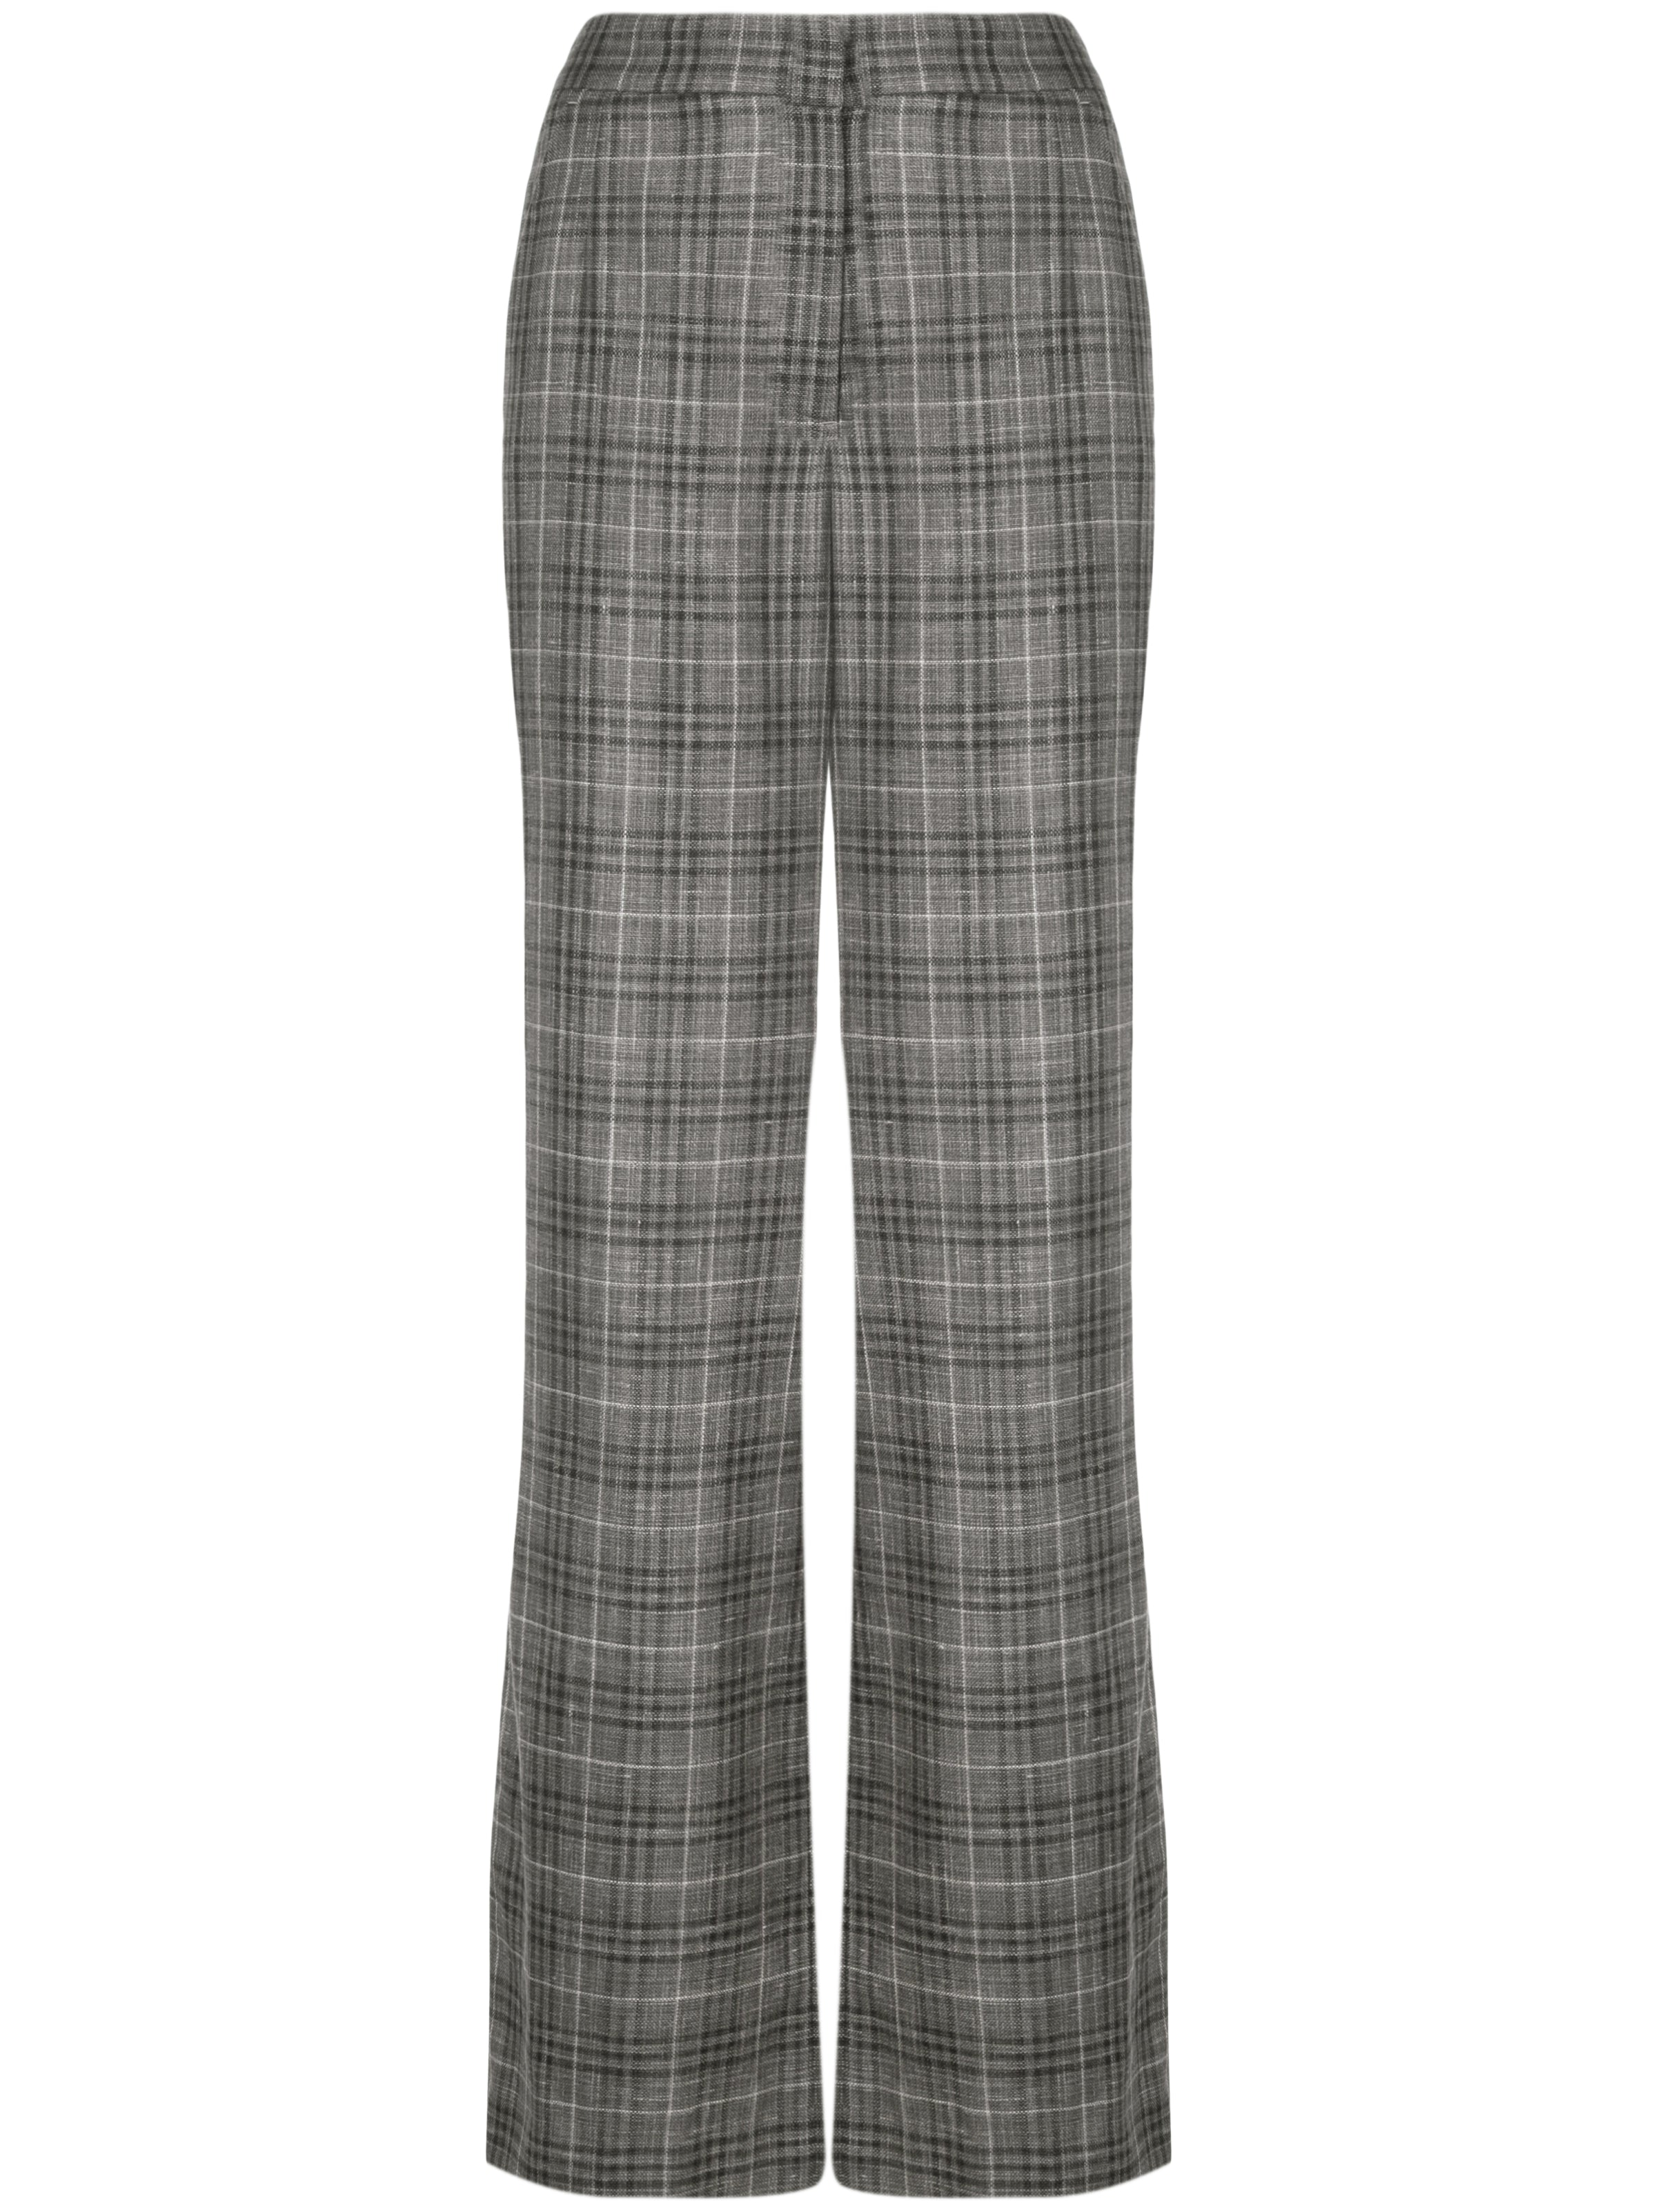 LORO PIANA PLAID FLAT FRONT MENSWEAR TROUSER